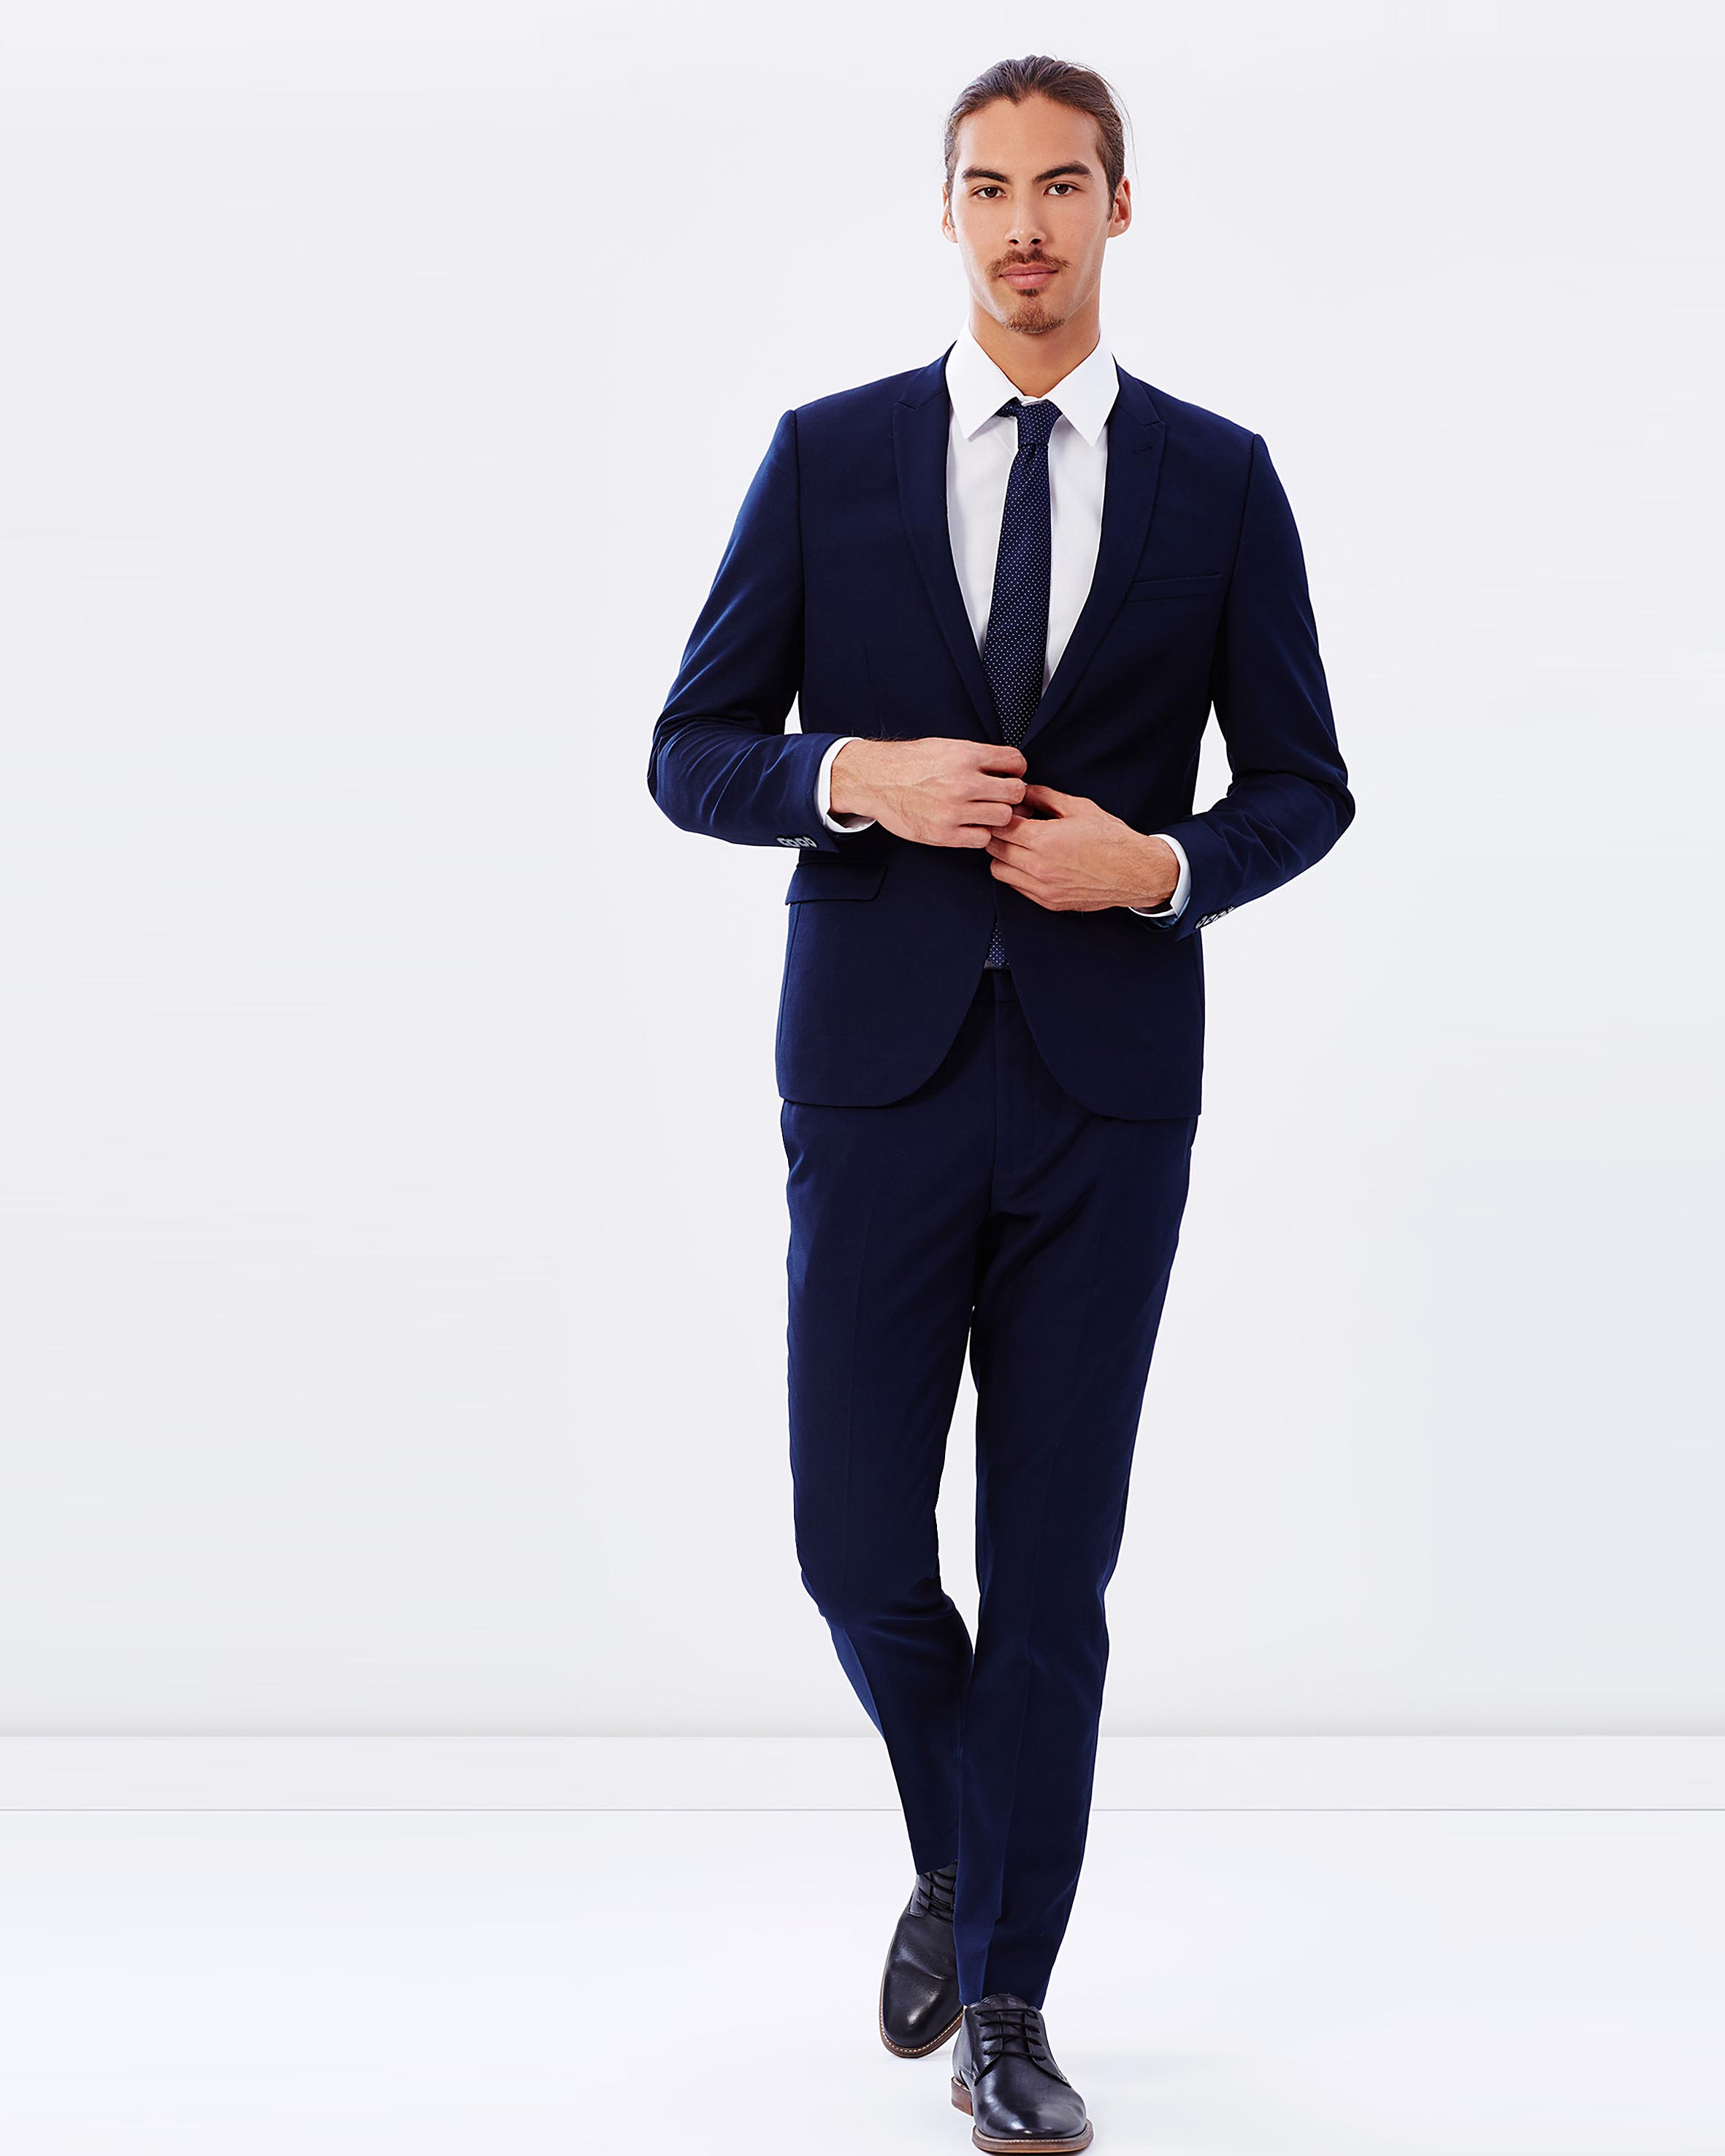 Custom tailored Australian Merino wool men's suits in Sydney & Melbourne from $ with complimentary alterations. Book a free fitting now!